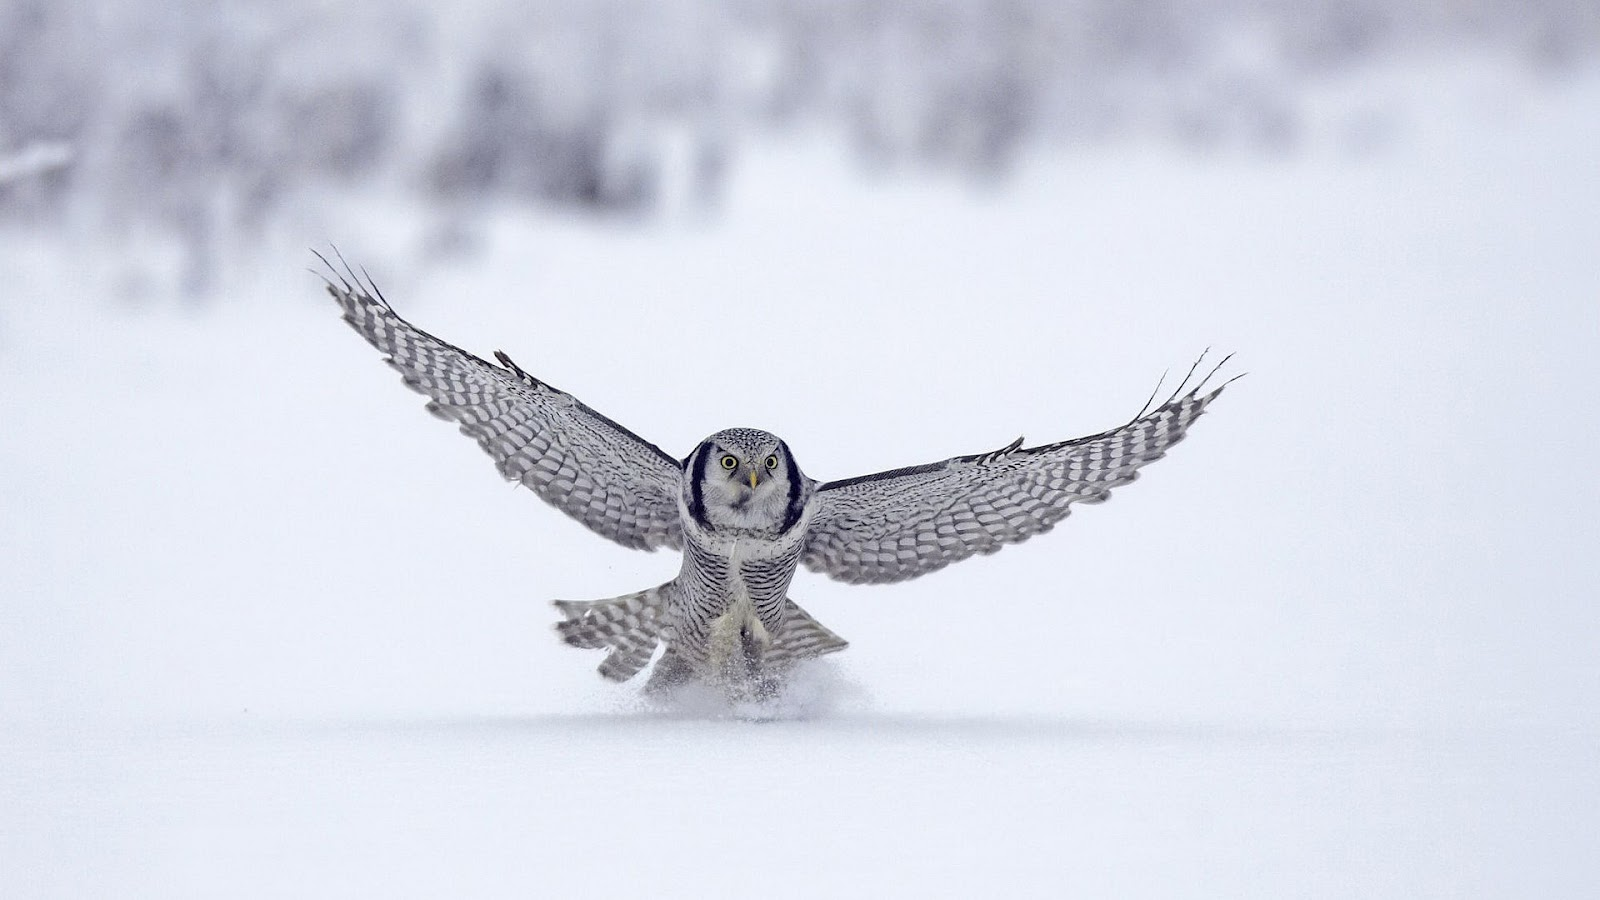 HD animal wallpaper of a beautiful white owl landing in the snow HD 1600x900